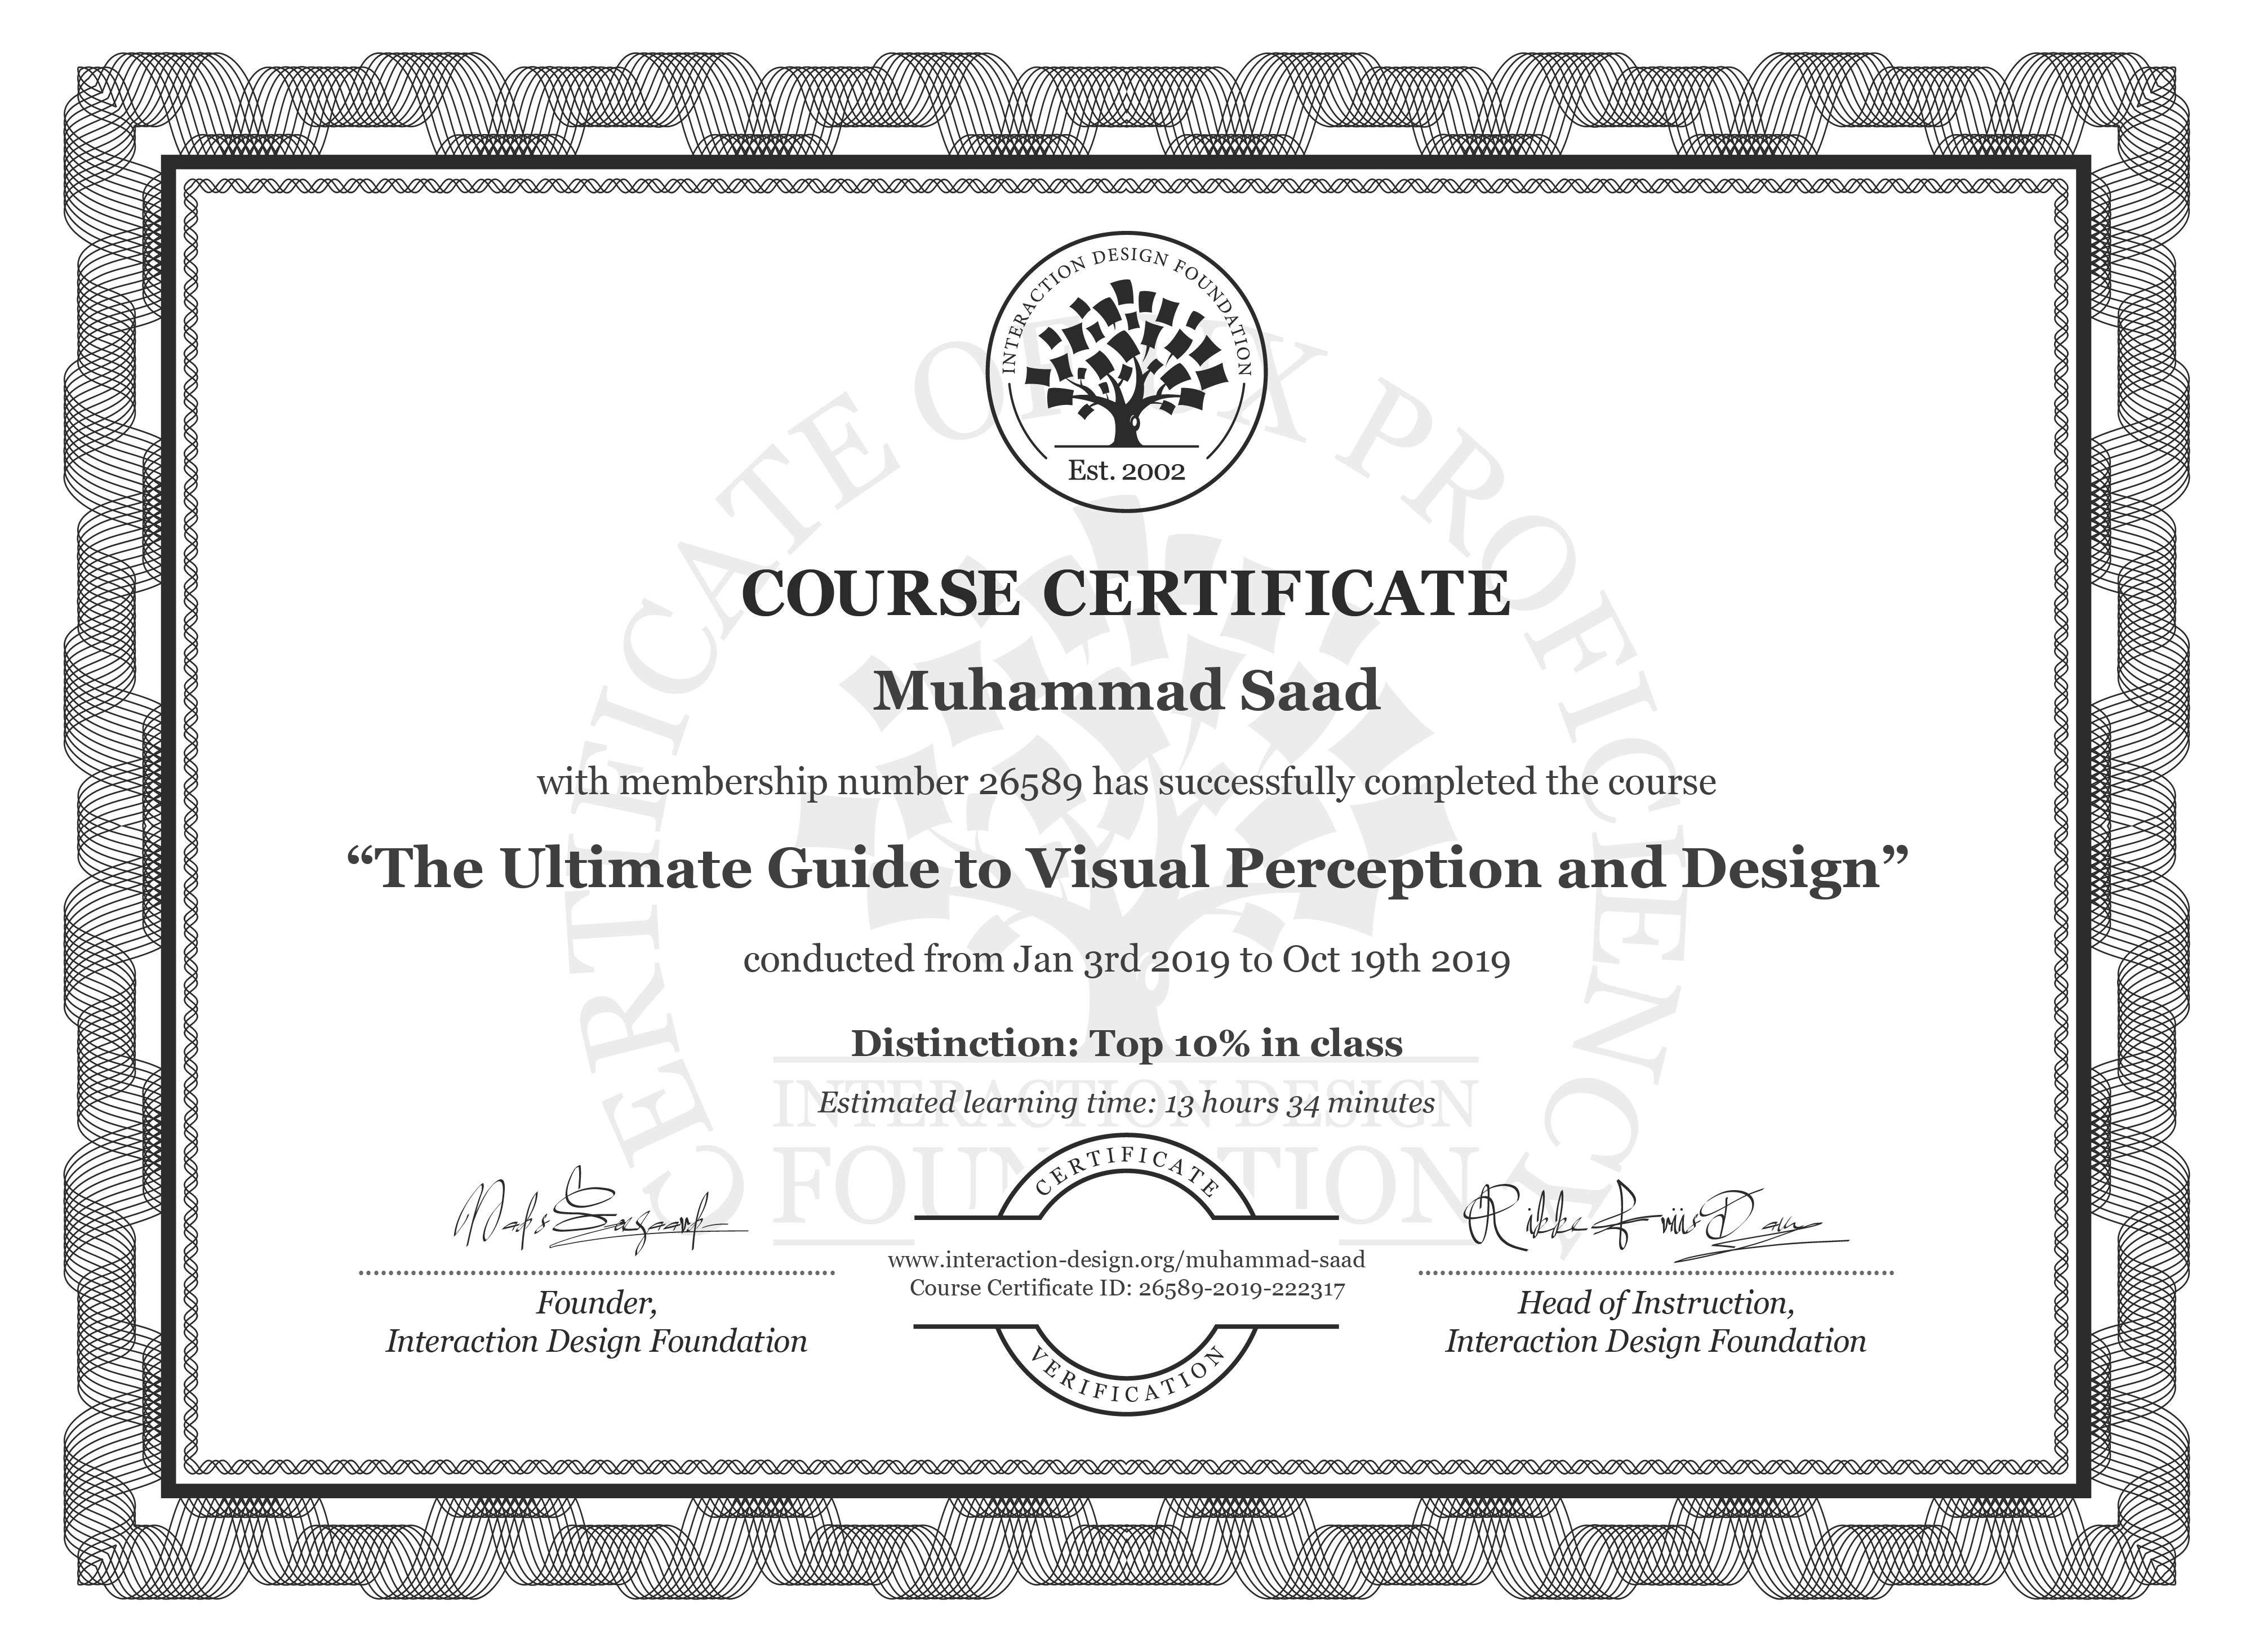 Muhammad Saad's Course Certificate: The Ultimate Guide to Visual Perception and Design